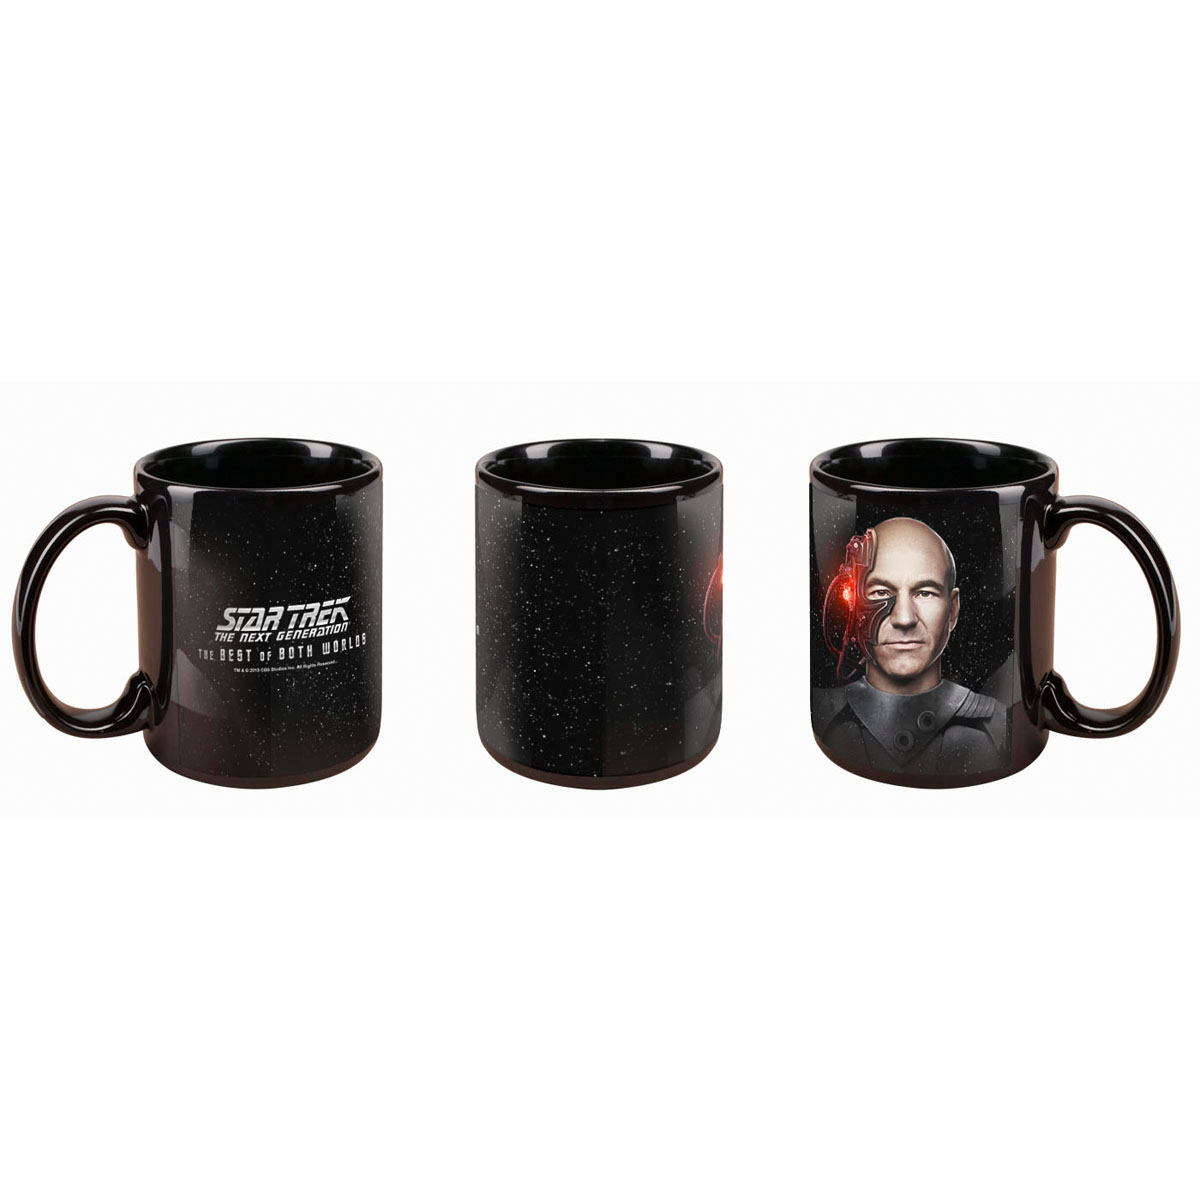 Star Trek The Best of Both Worlds Mug